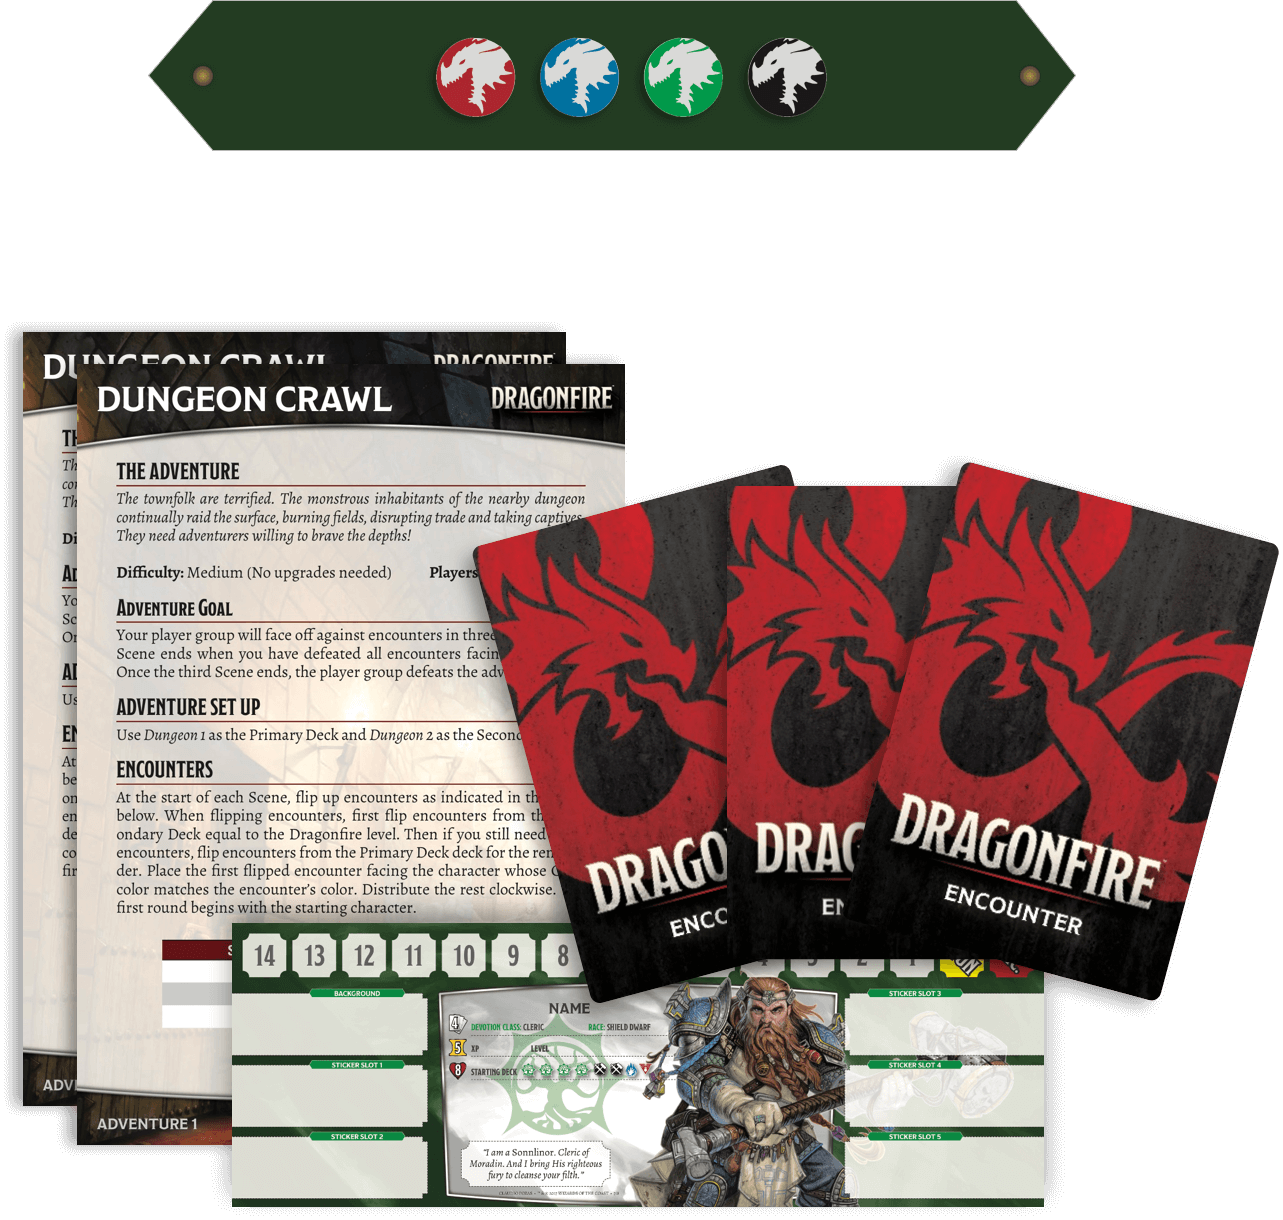 DUNGEONS & DRAGONS Dragonfire deckbuilding game